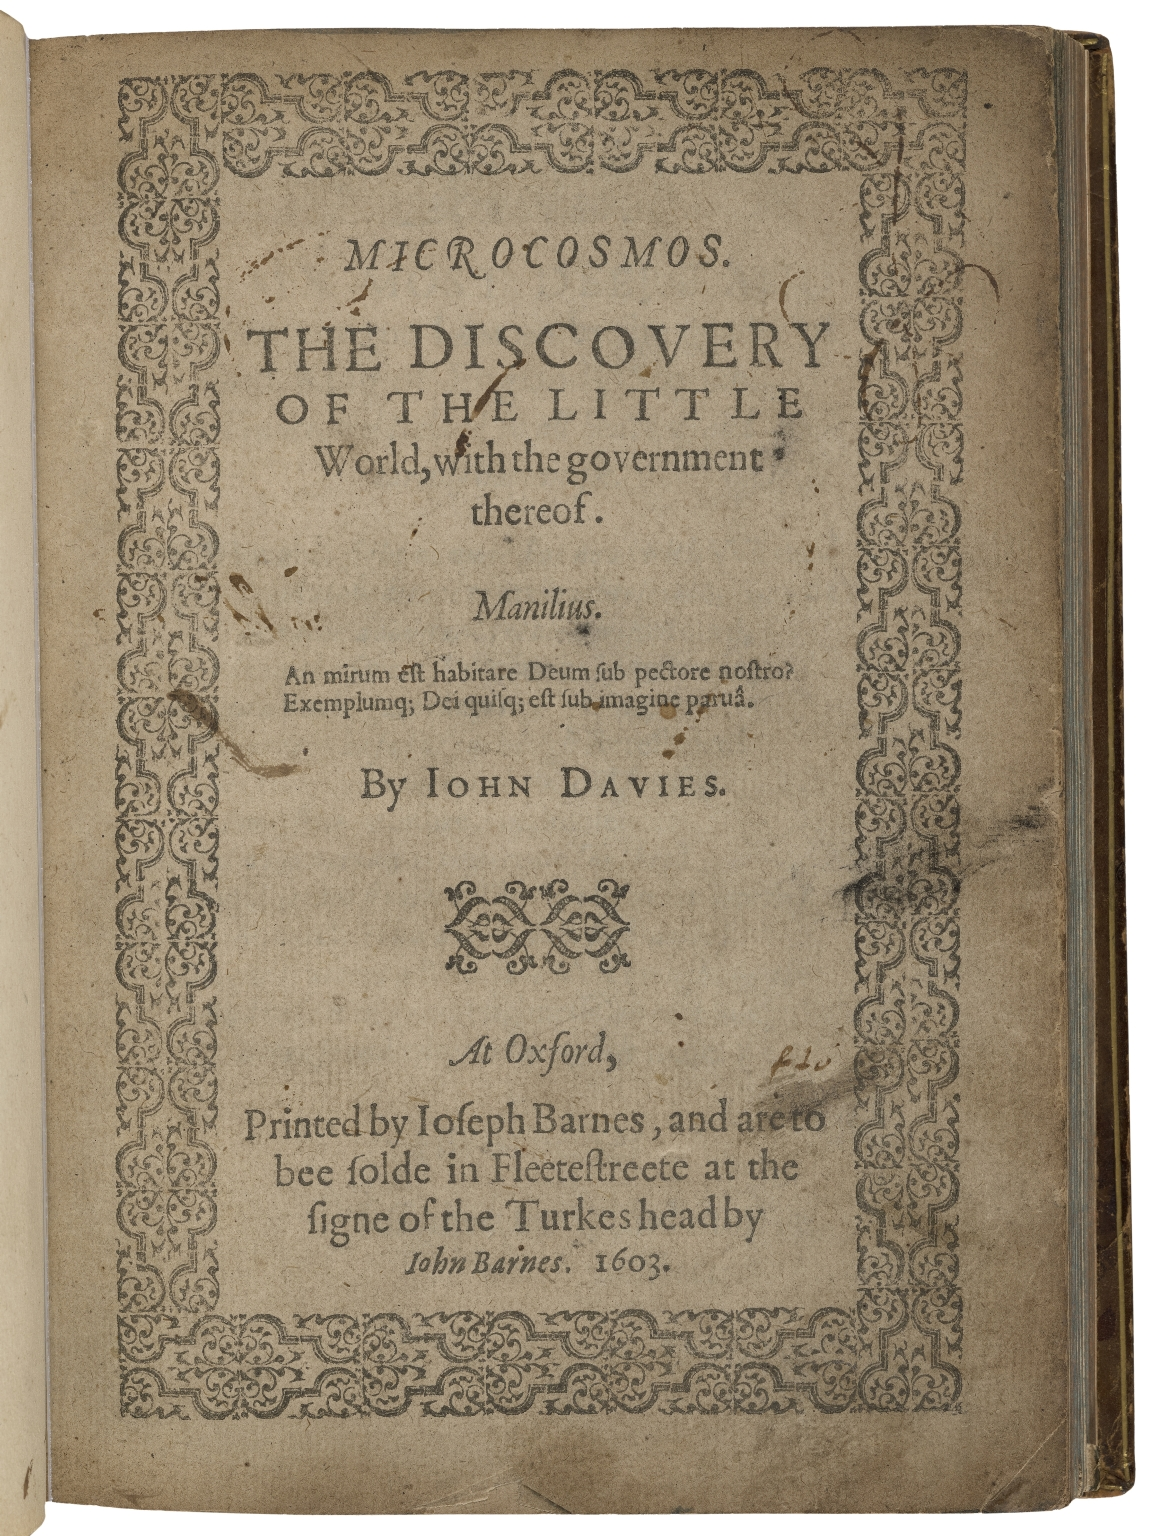 Microcosmos. The discovery of the little world, with the government thereof. By Iohn Davies.